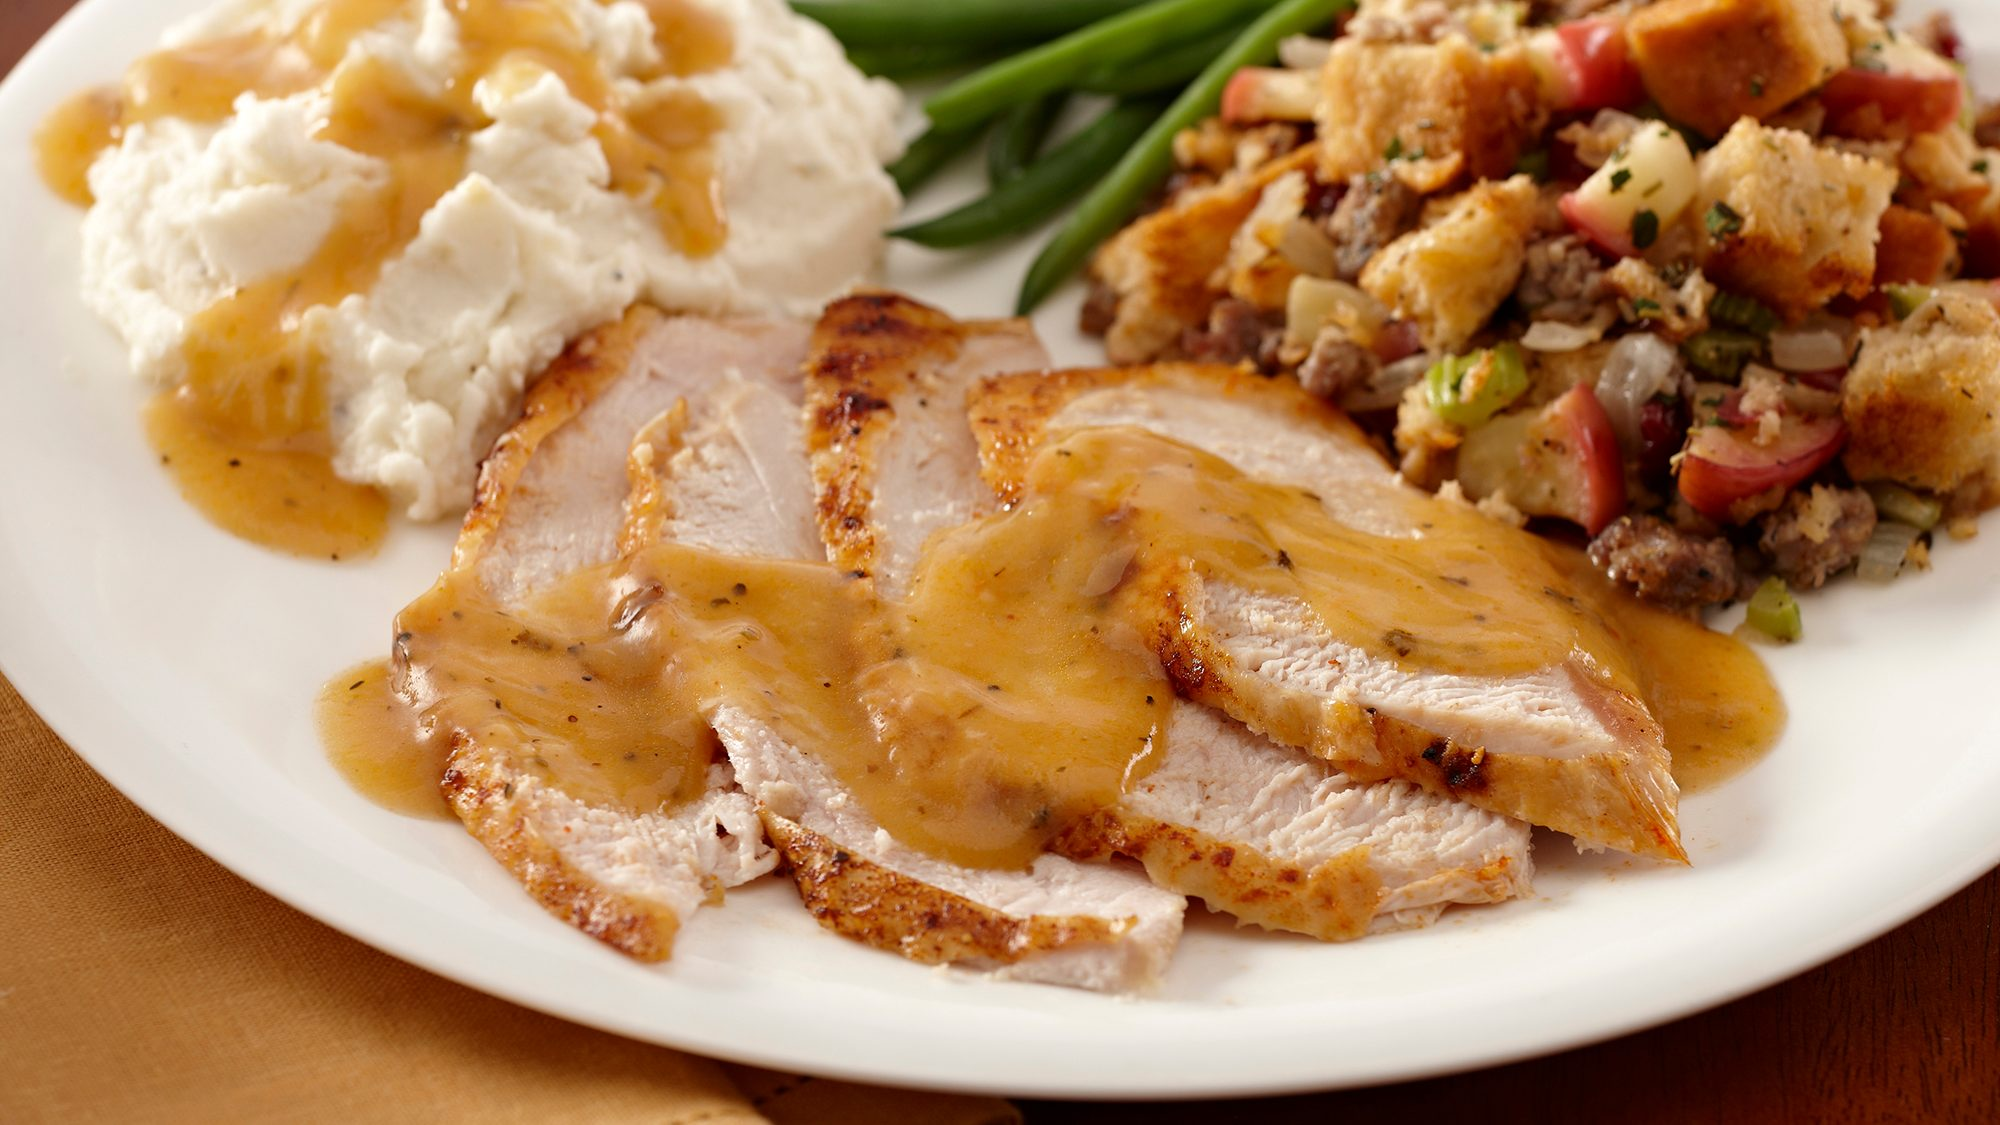 smoked-paprika-roasted-turkey-with-gravy.jpg